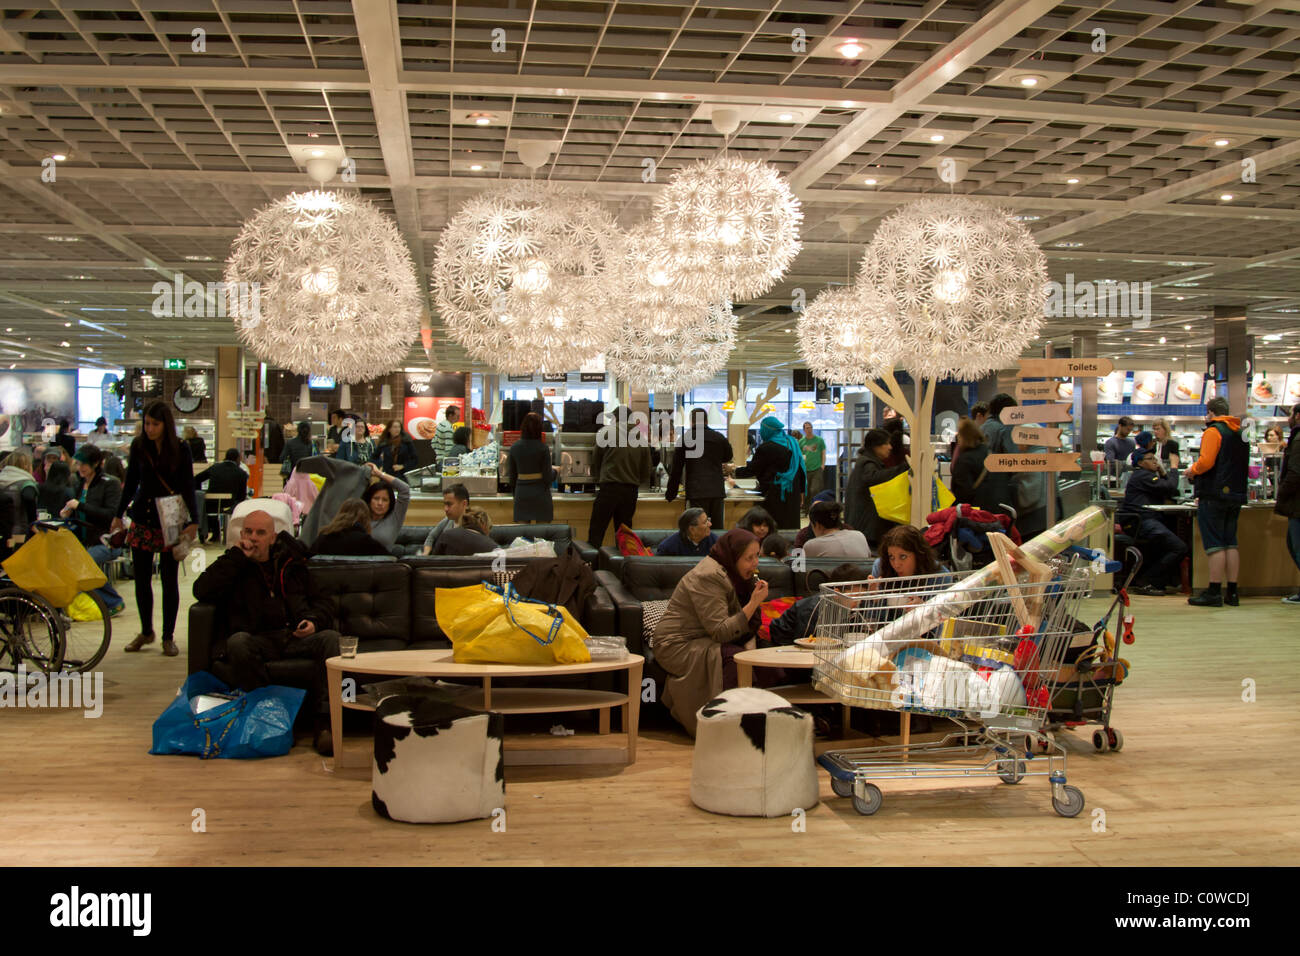 Restaurant ikea store wembley london stock photo for Ikea shops london